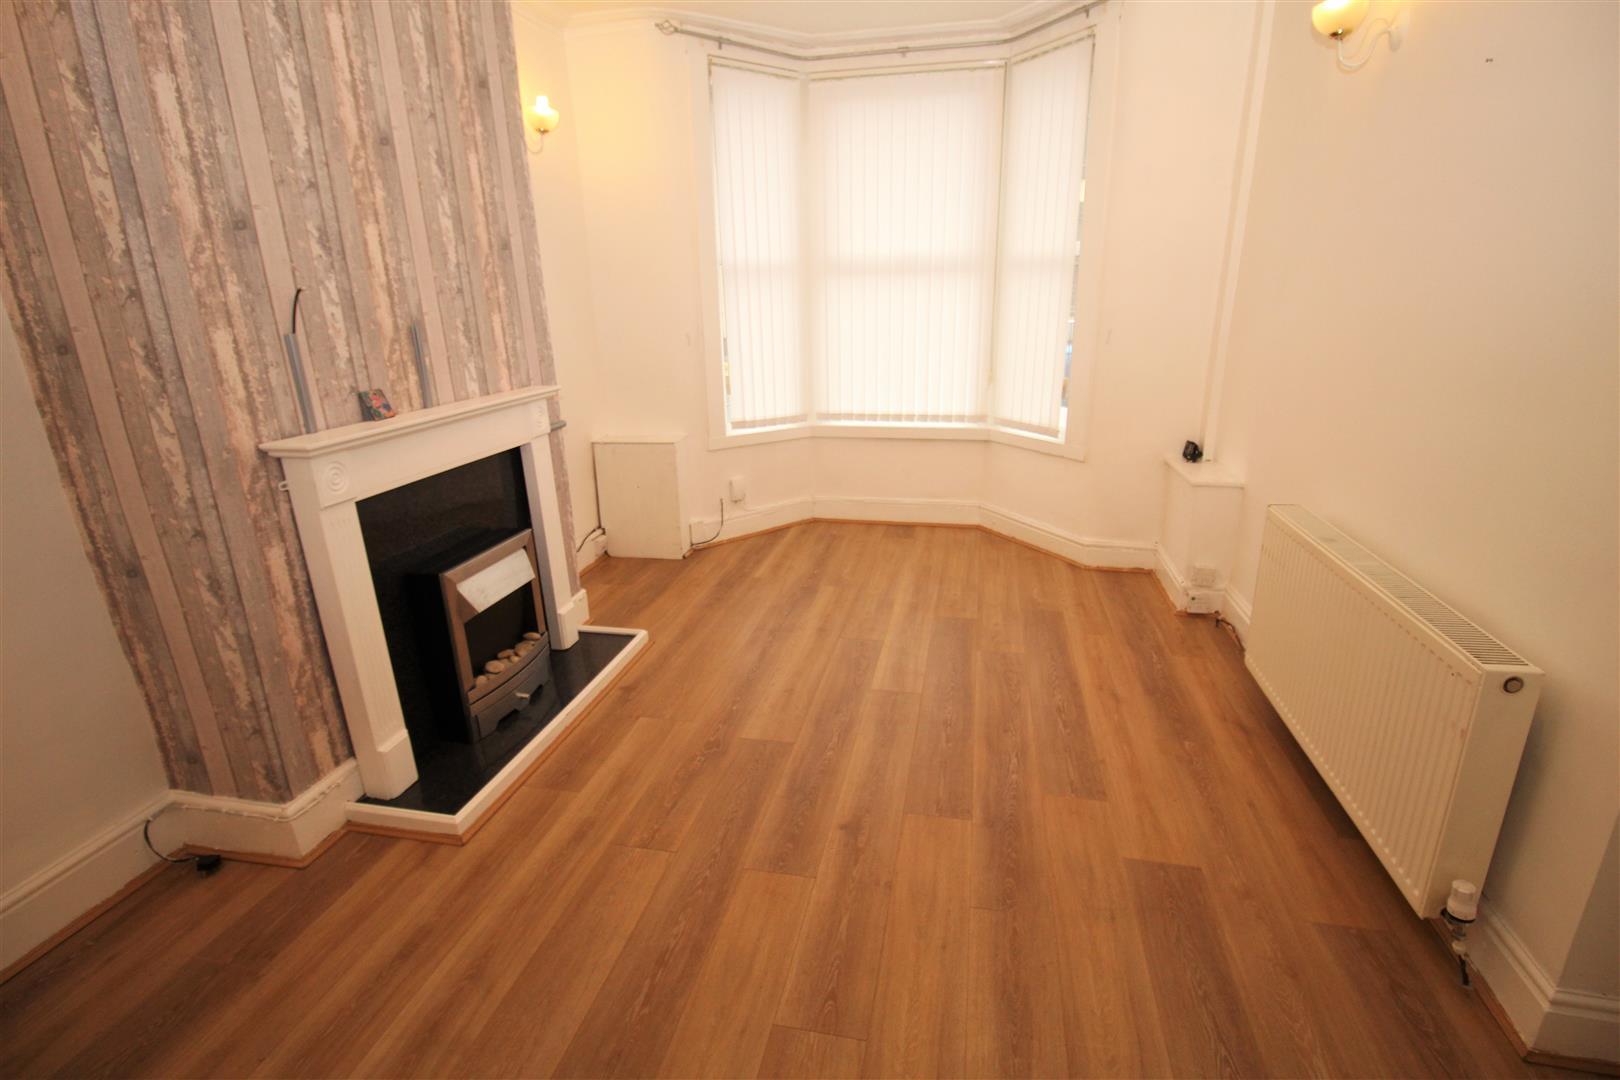 3 Bedrooms, House - Terraced, Percy Street, Bootle, Liverpool